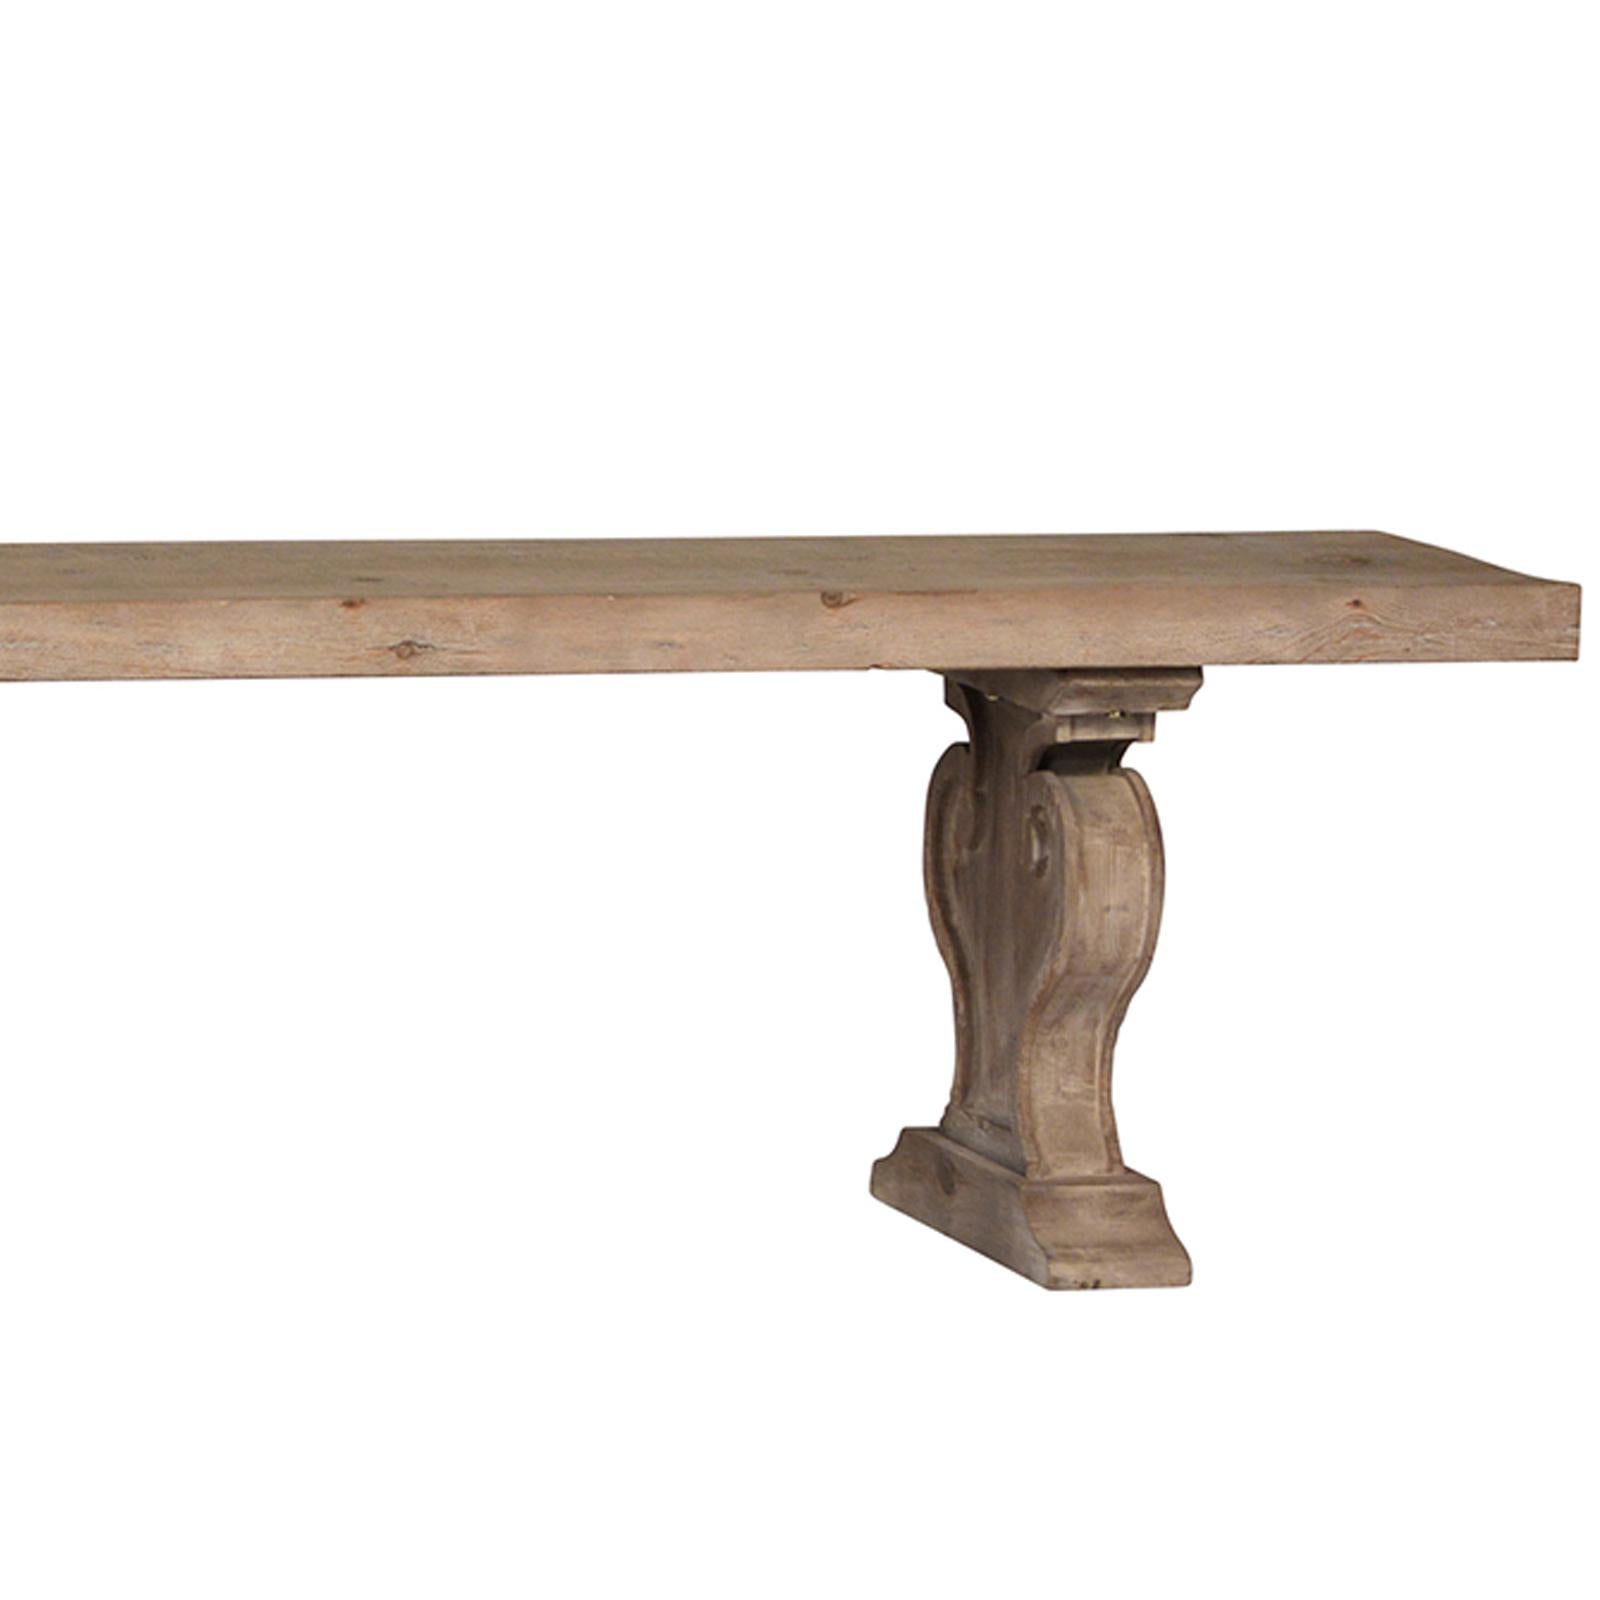 Reclaimed Old Wood Bench With Carved Legs. Classic Hear Shaped Trestle  Base. Light White